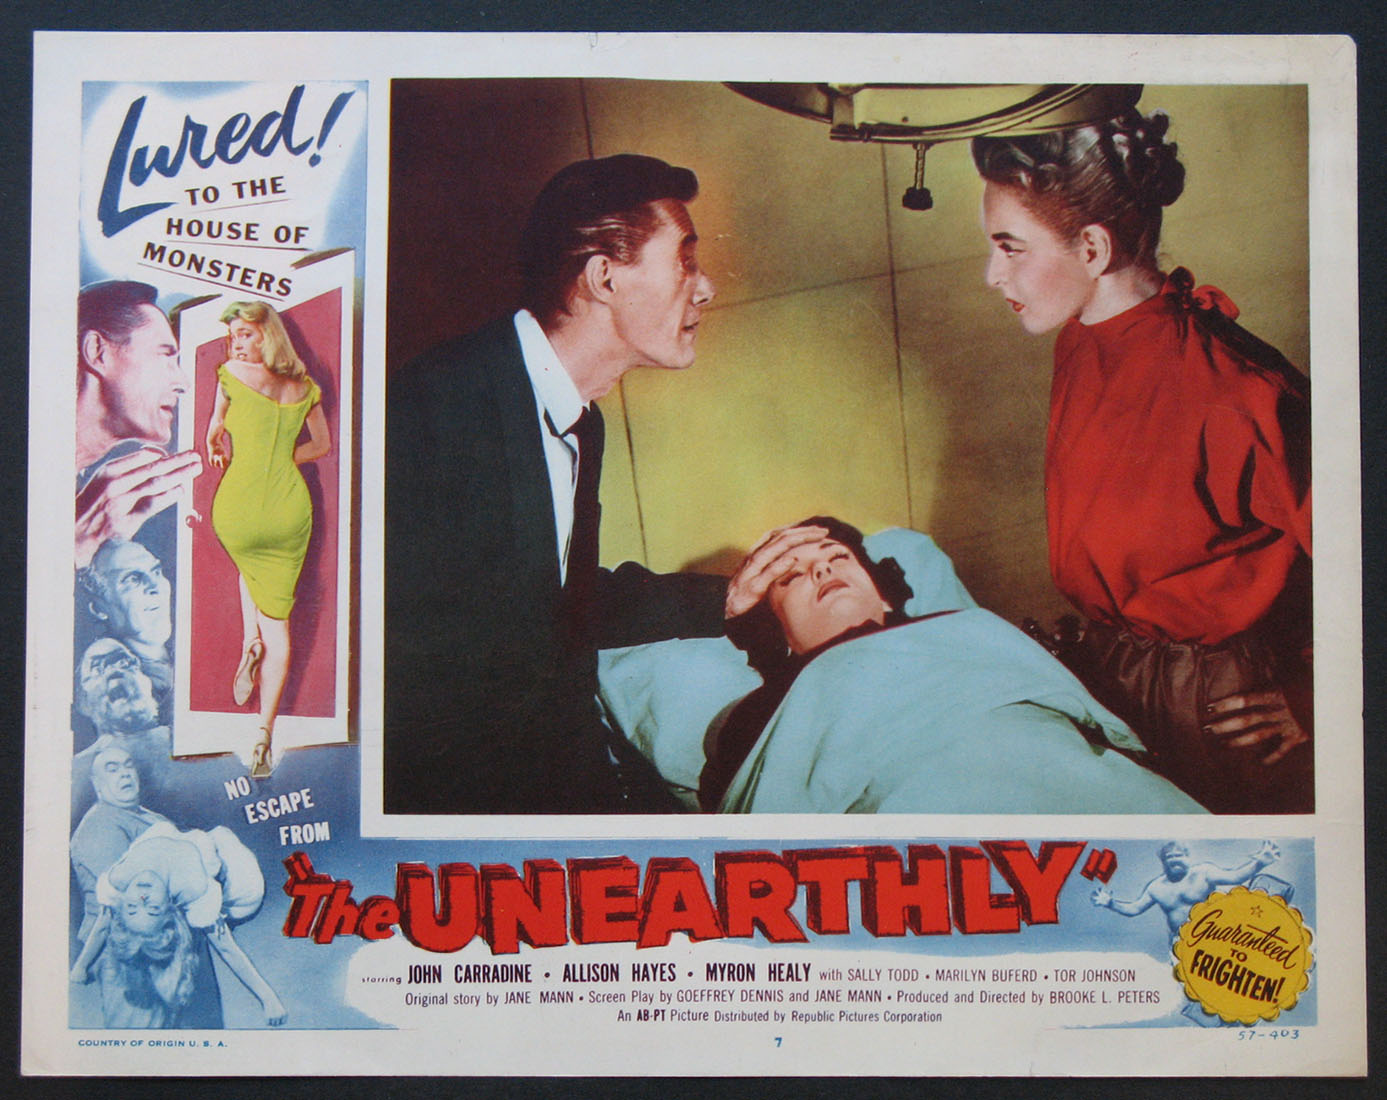 UNEARTHLY, THE (The Unearthly) @ FilmPosters.com